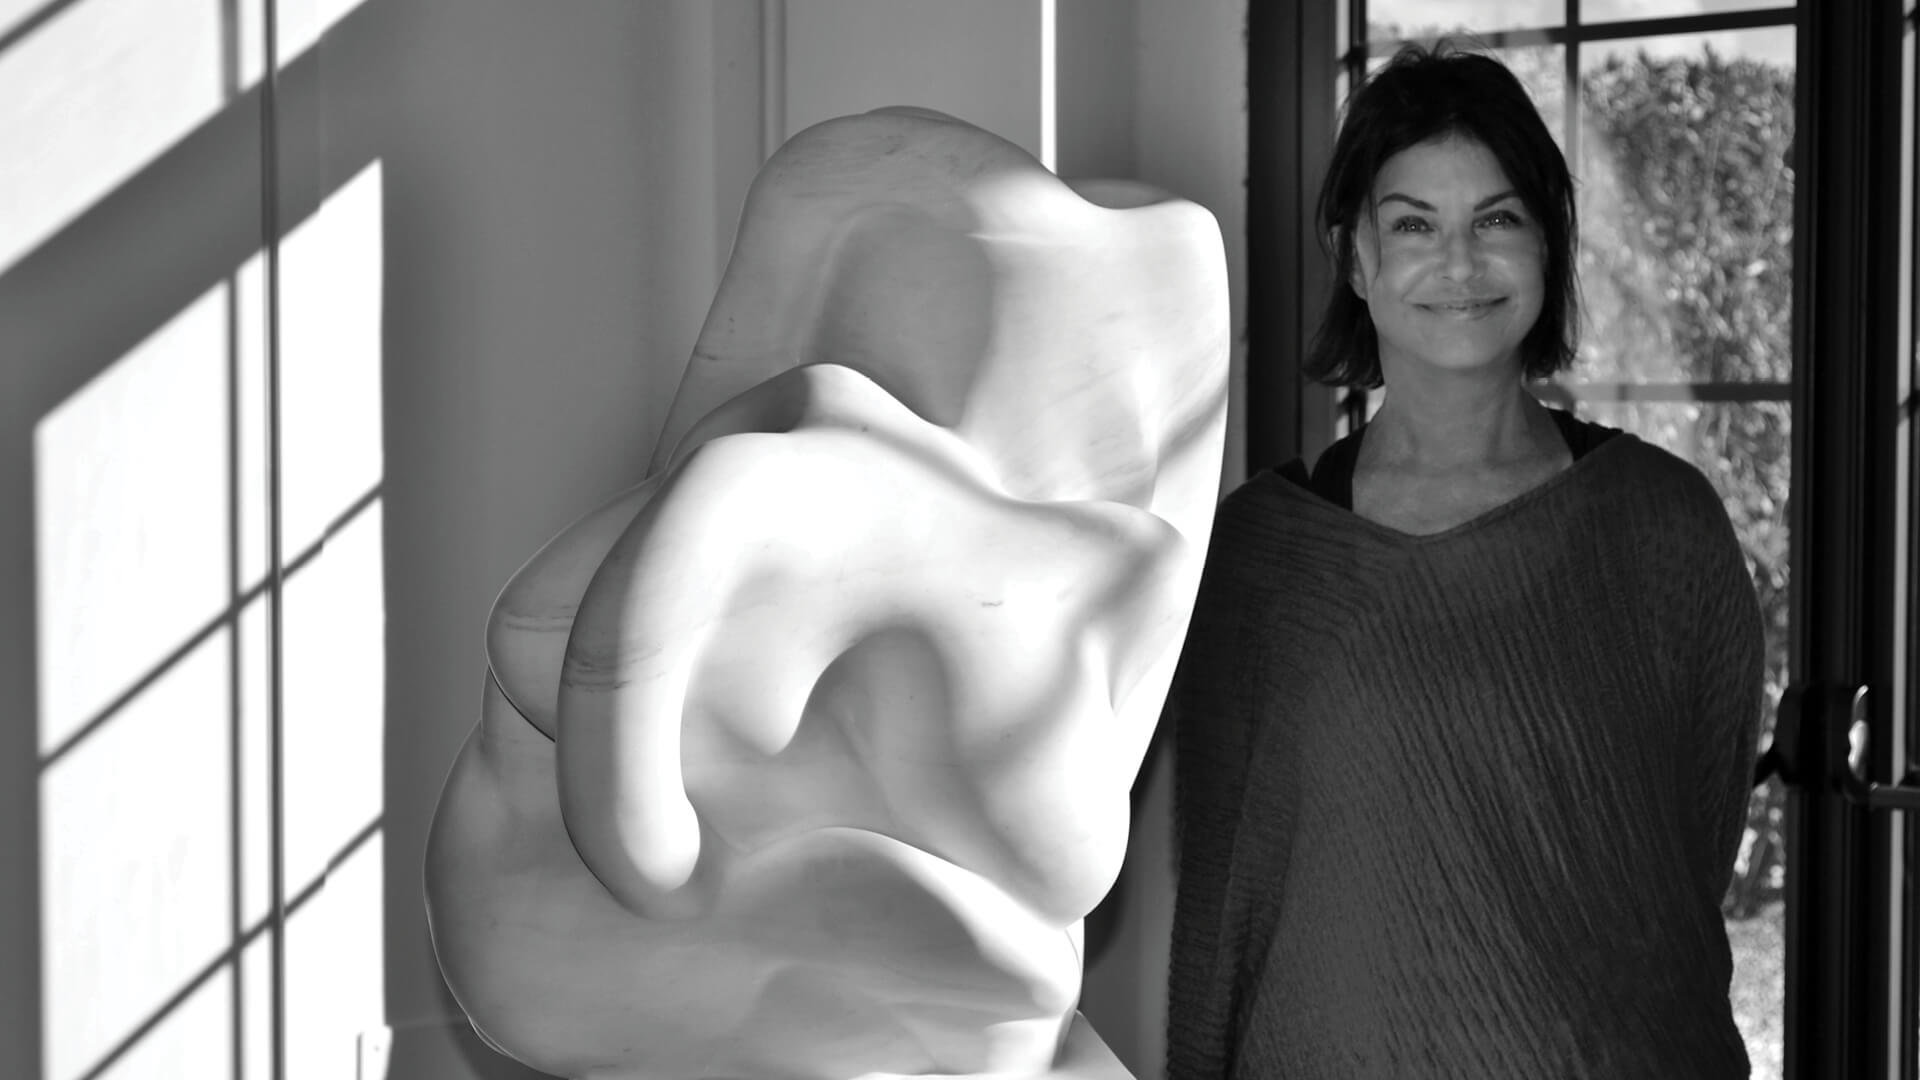 Biomorphic sculptures by Carolyn Frischling convey emotions and the intangible